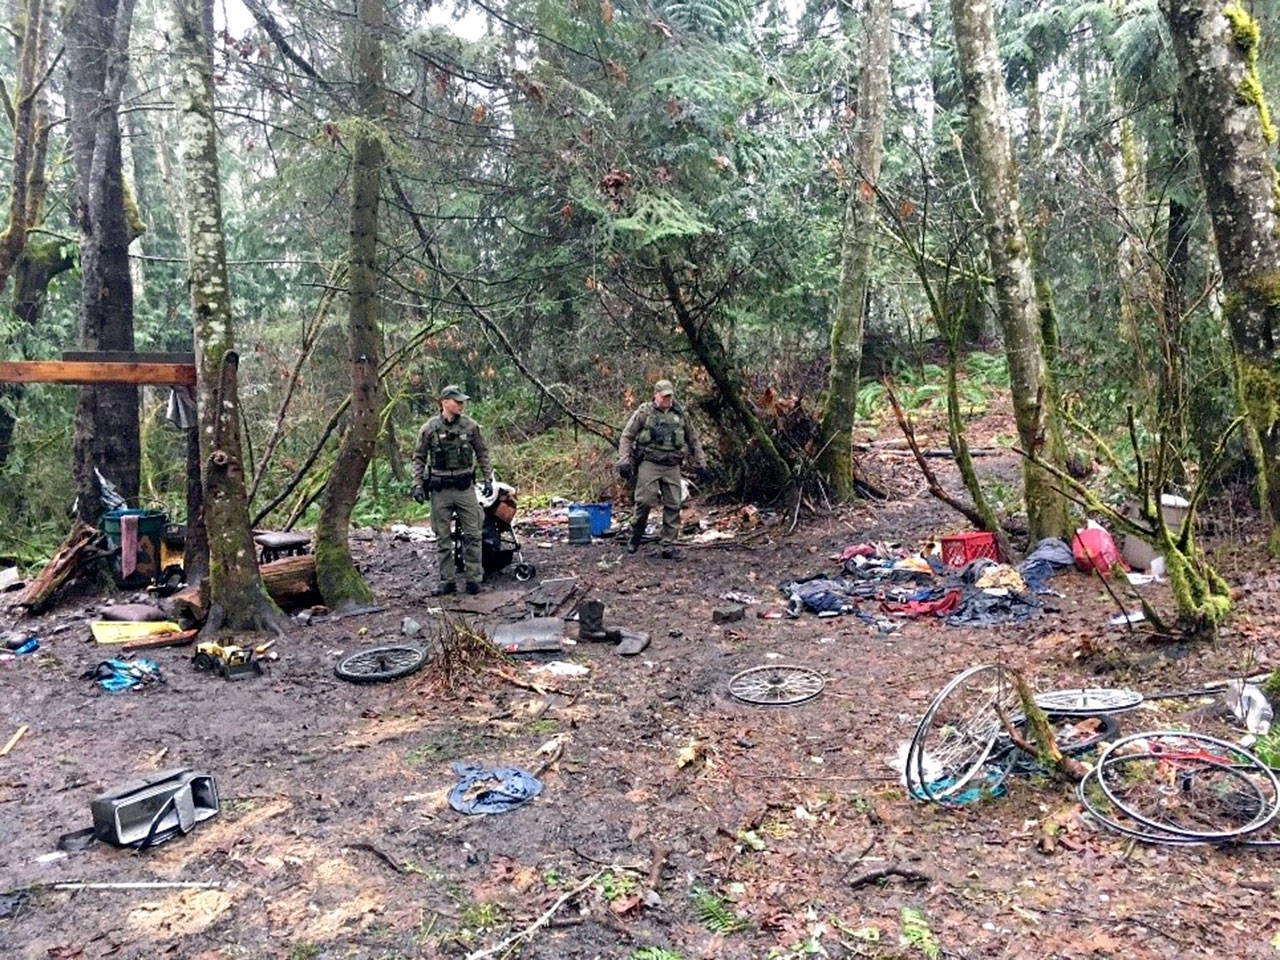 State Department of Fish and Wildlife officers Morgan Cooney and Bryan Davidson survey trash left behind at an illegal homeless encampment. (Washington Department of Fish and Wildlife)